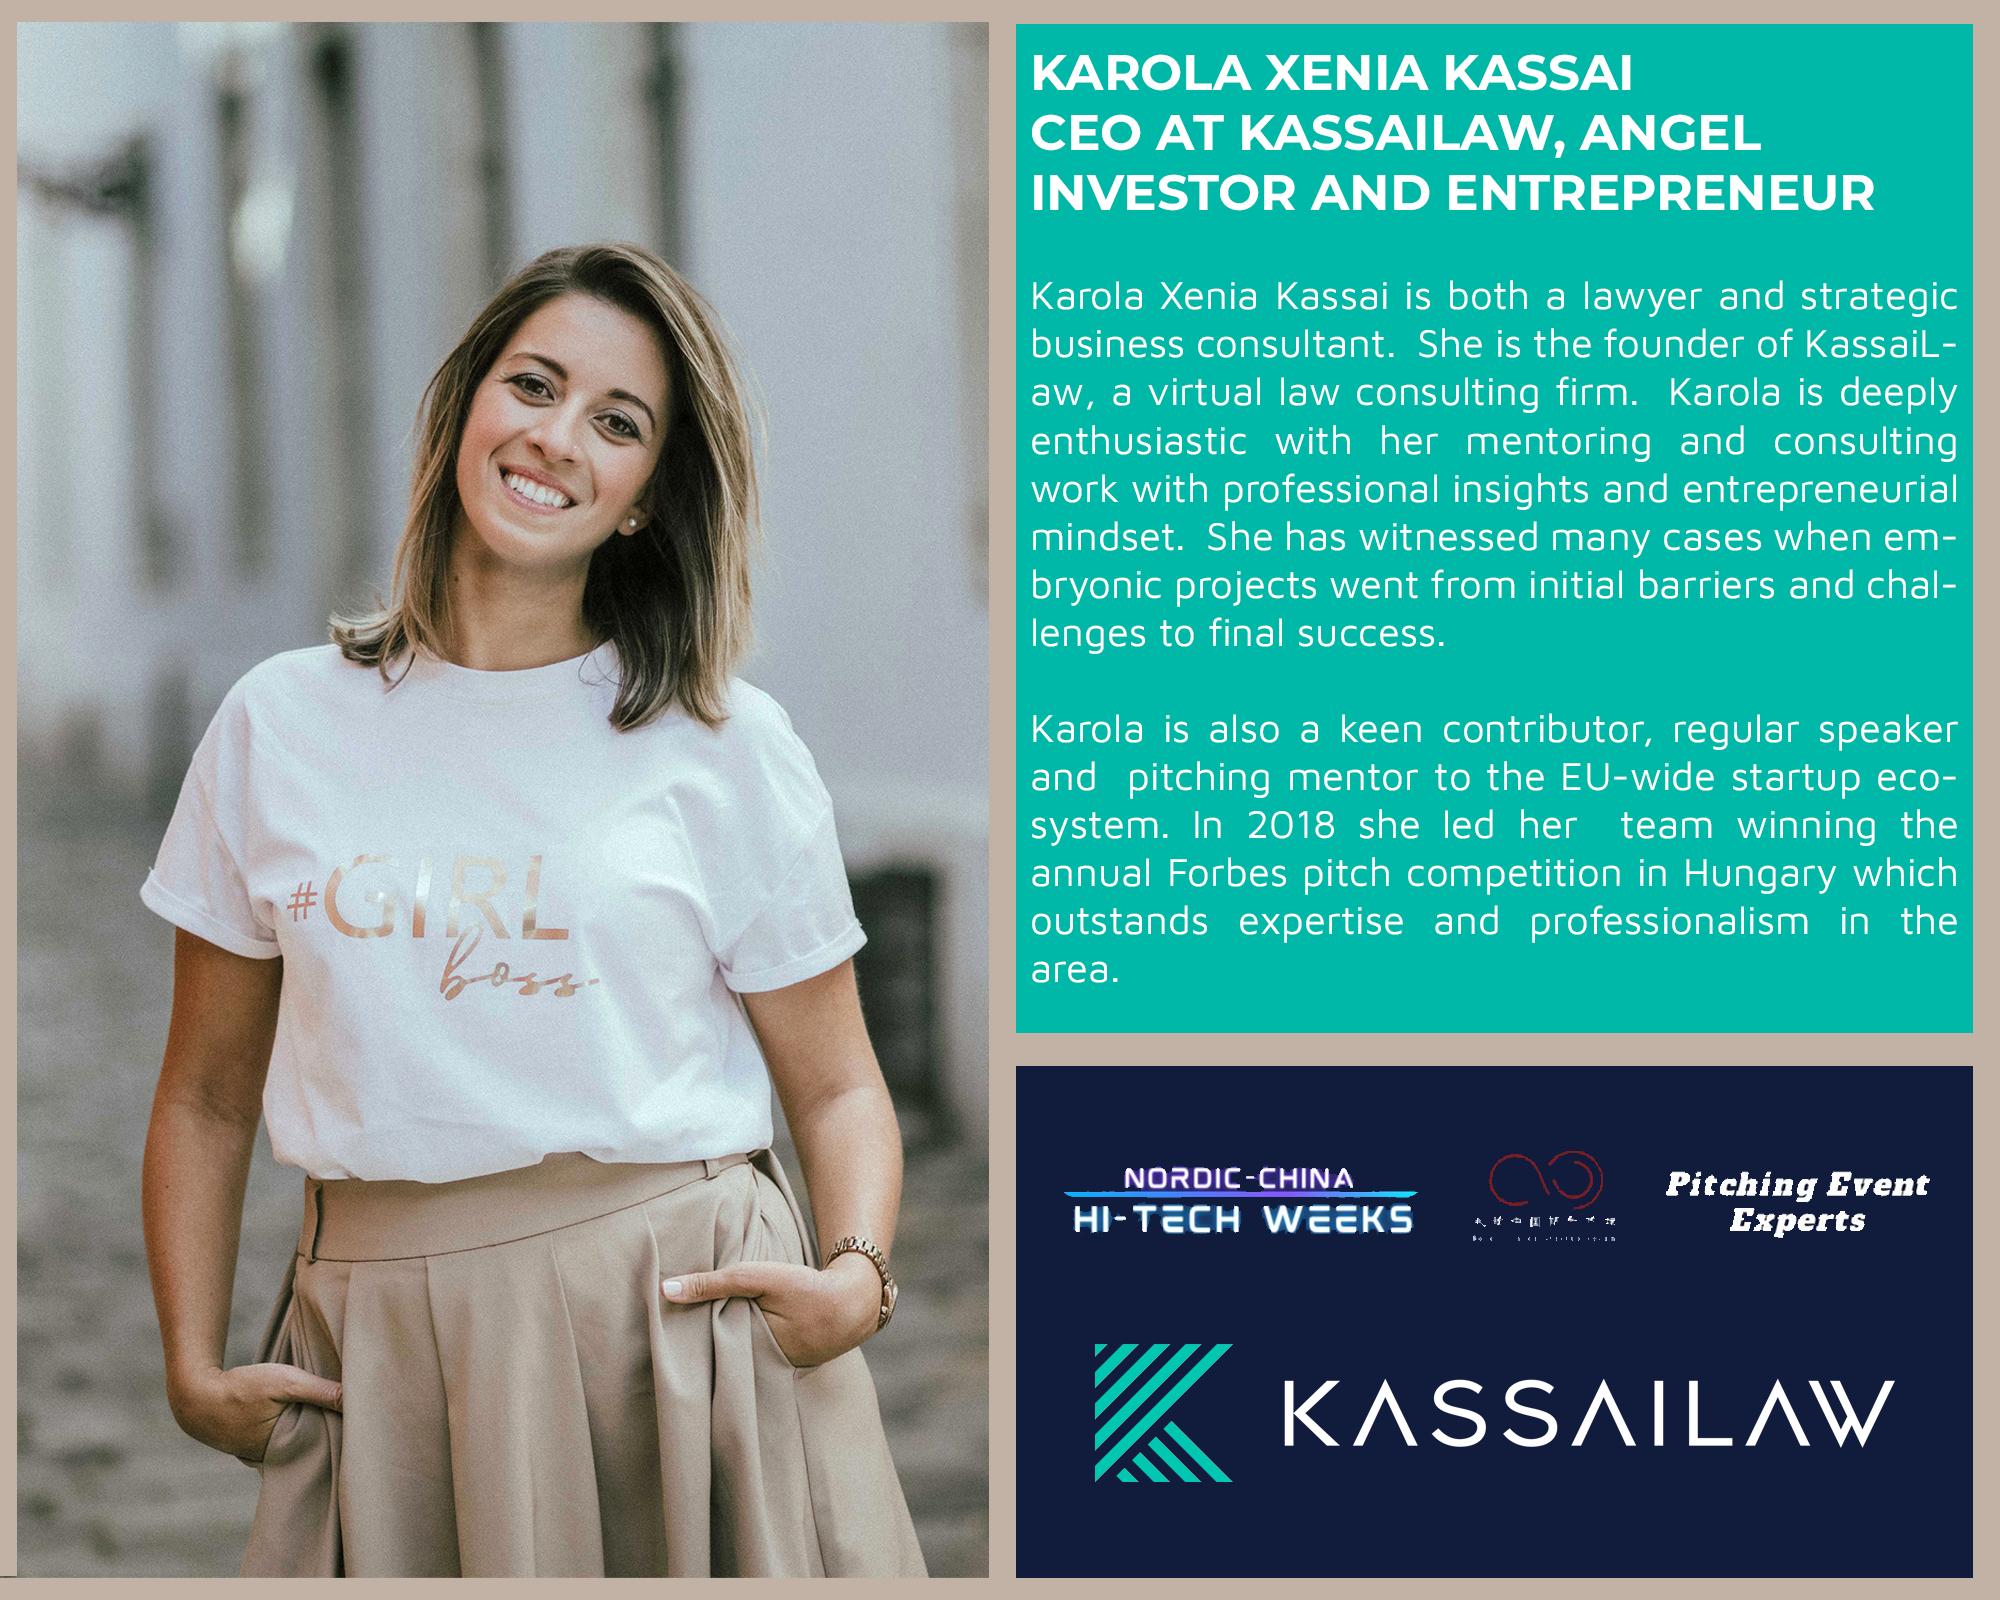 Karola is an expert at the Stockholm HTW Pitching Event by Nordic-China Startup Forum